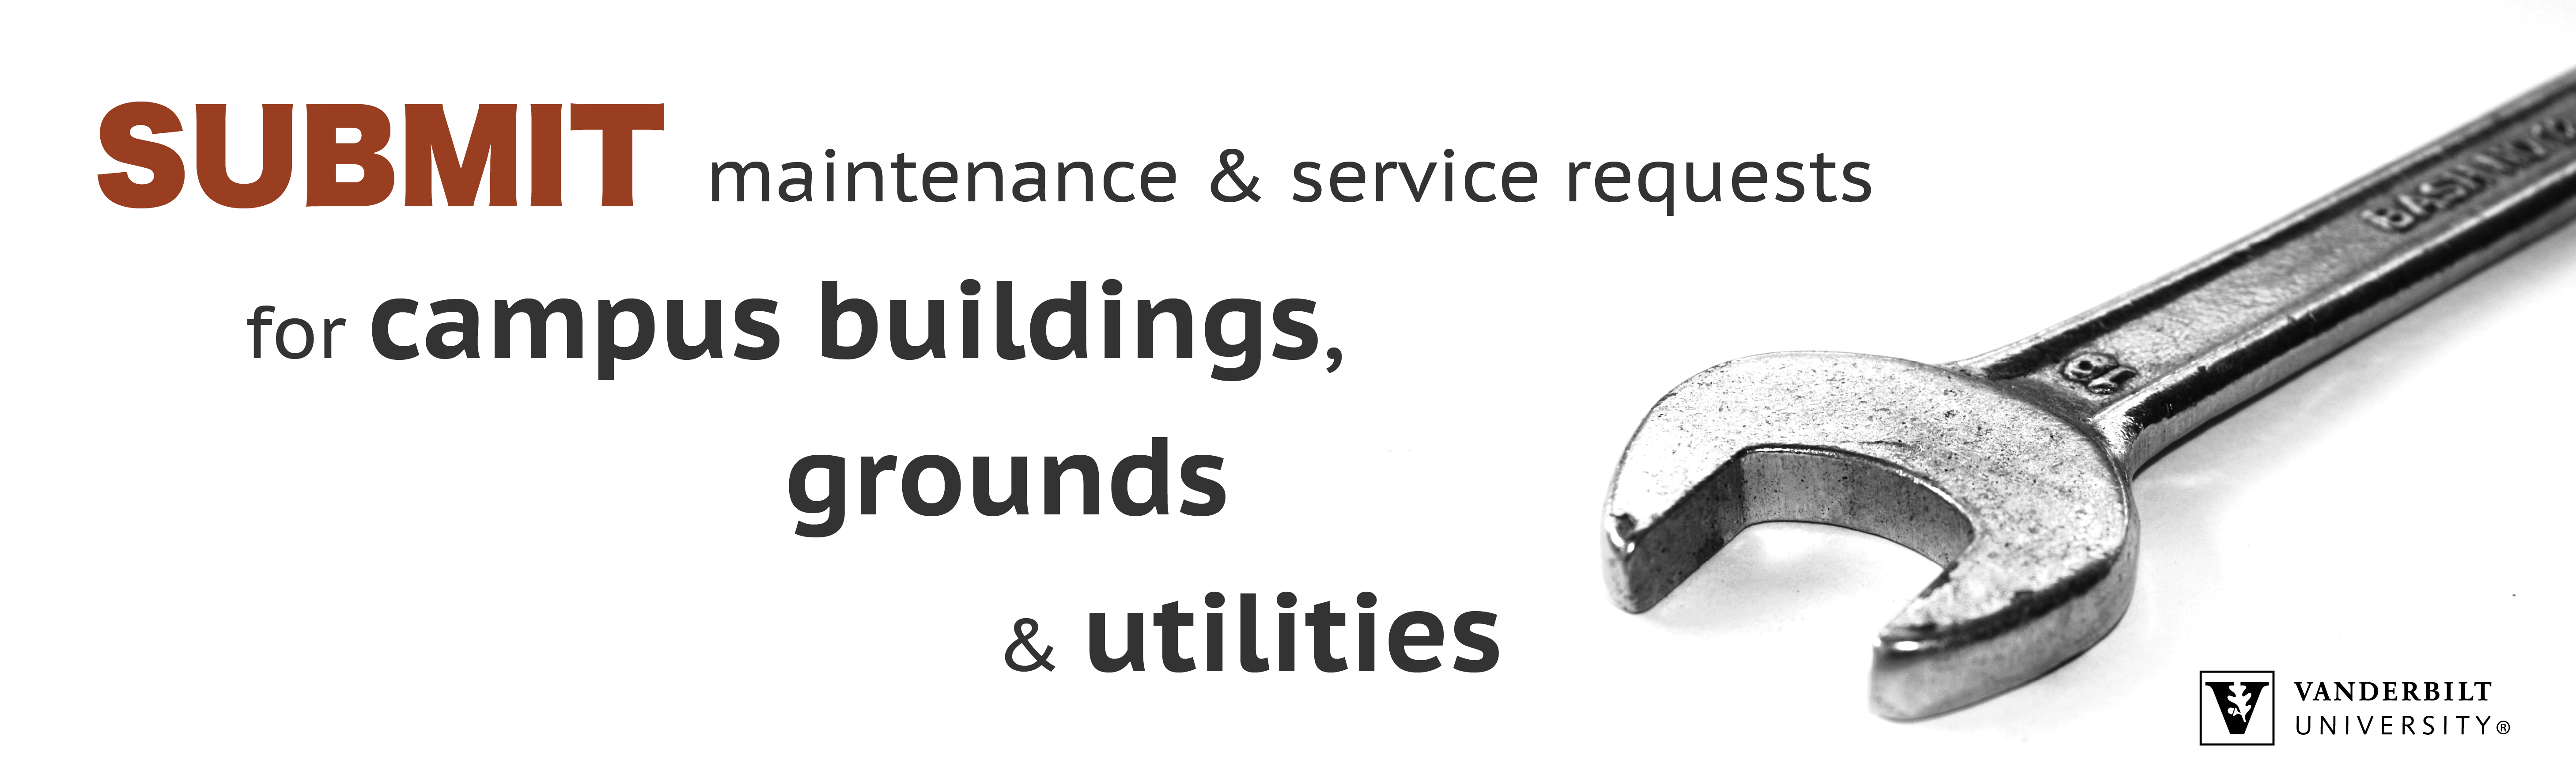 Submit maintenance and service requests